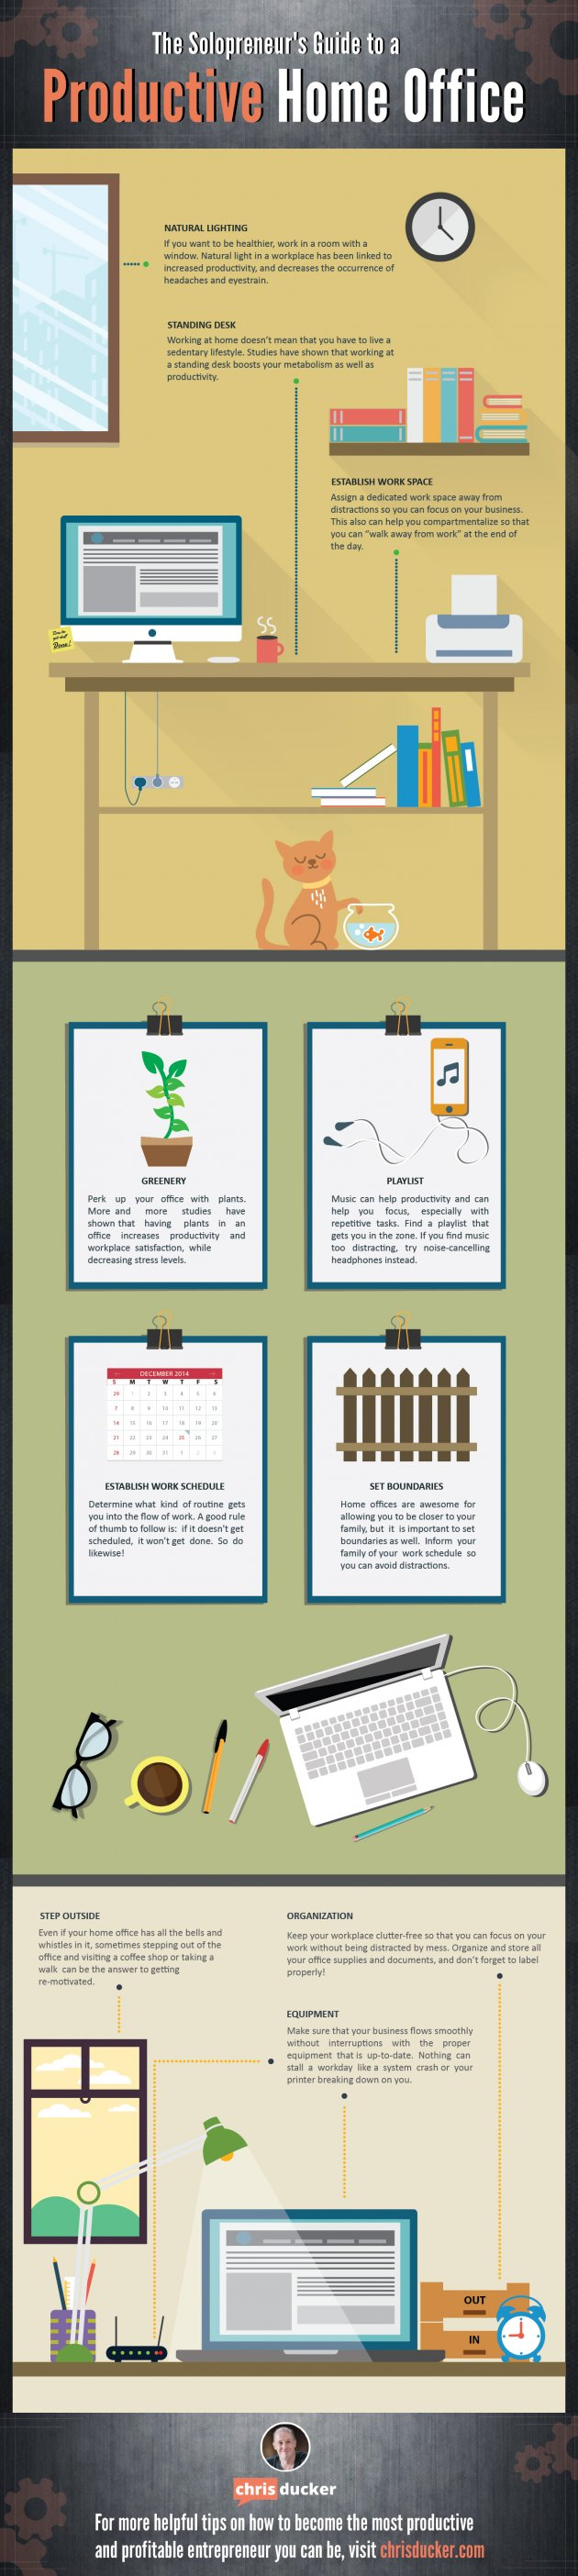 Infographic: The best way to Be Productive in Your Pajamas Solopreneur Productive Home Office 37581